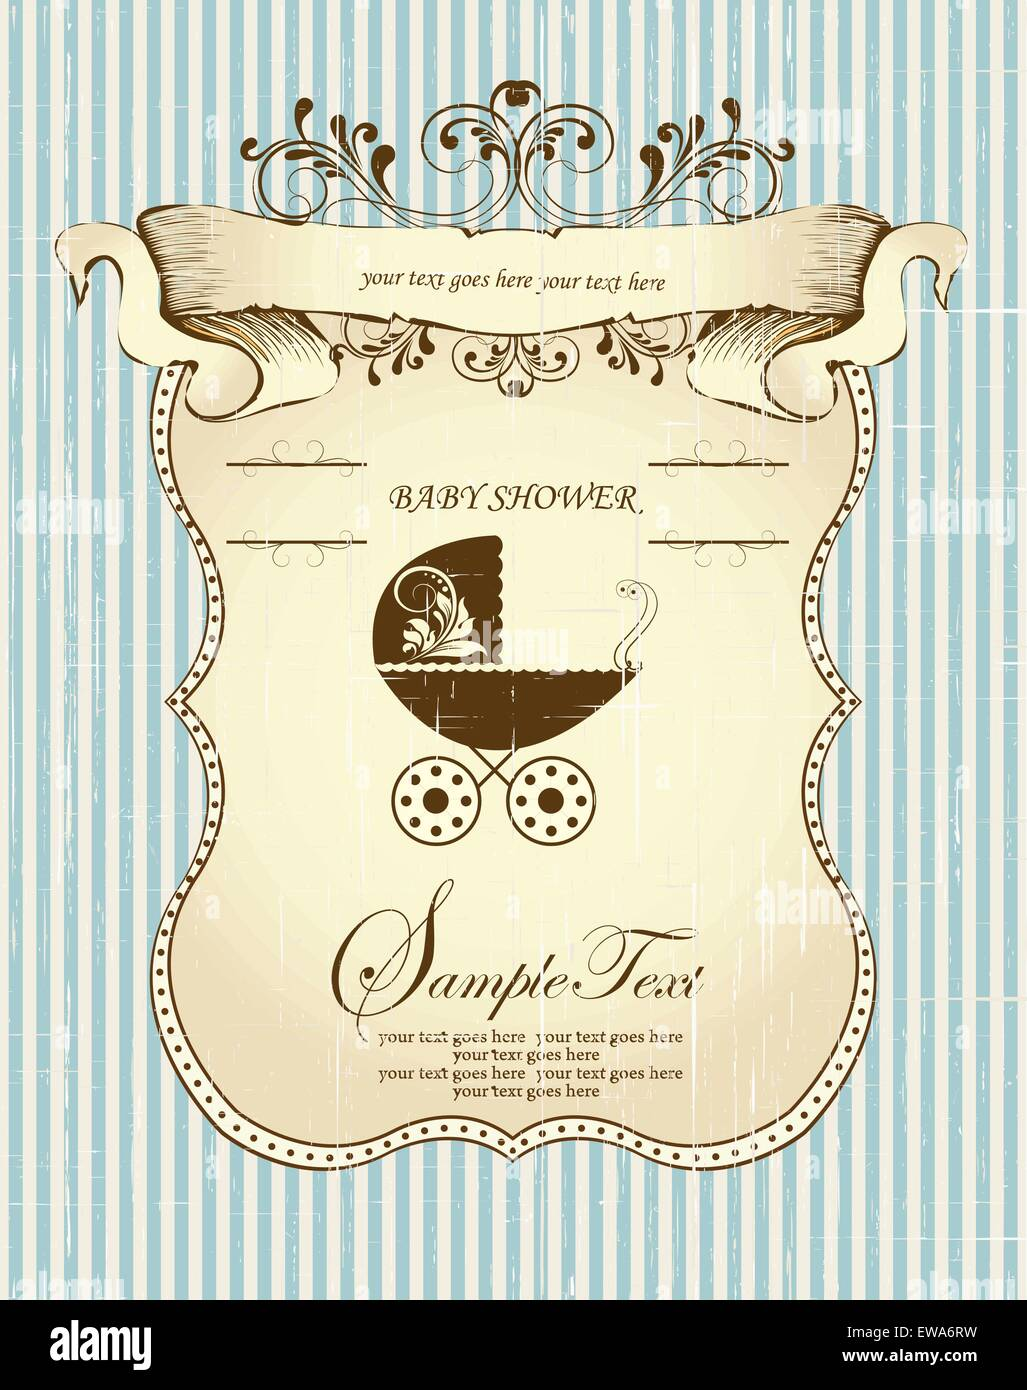 Vintage baby shower invitation card with ornate elegant retro Stock ...